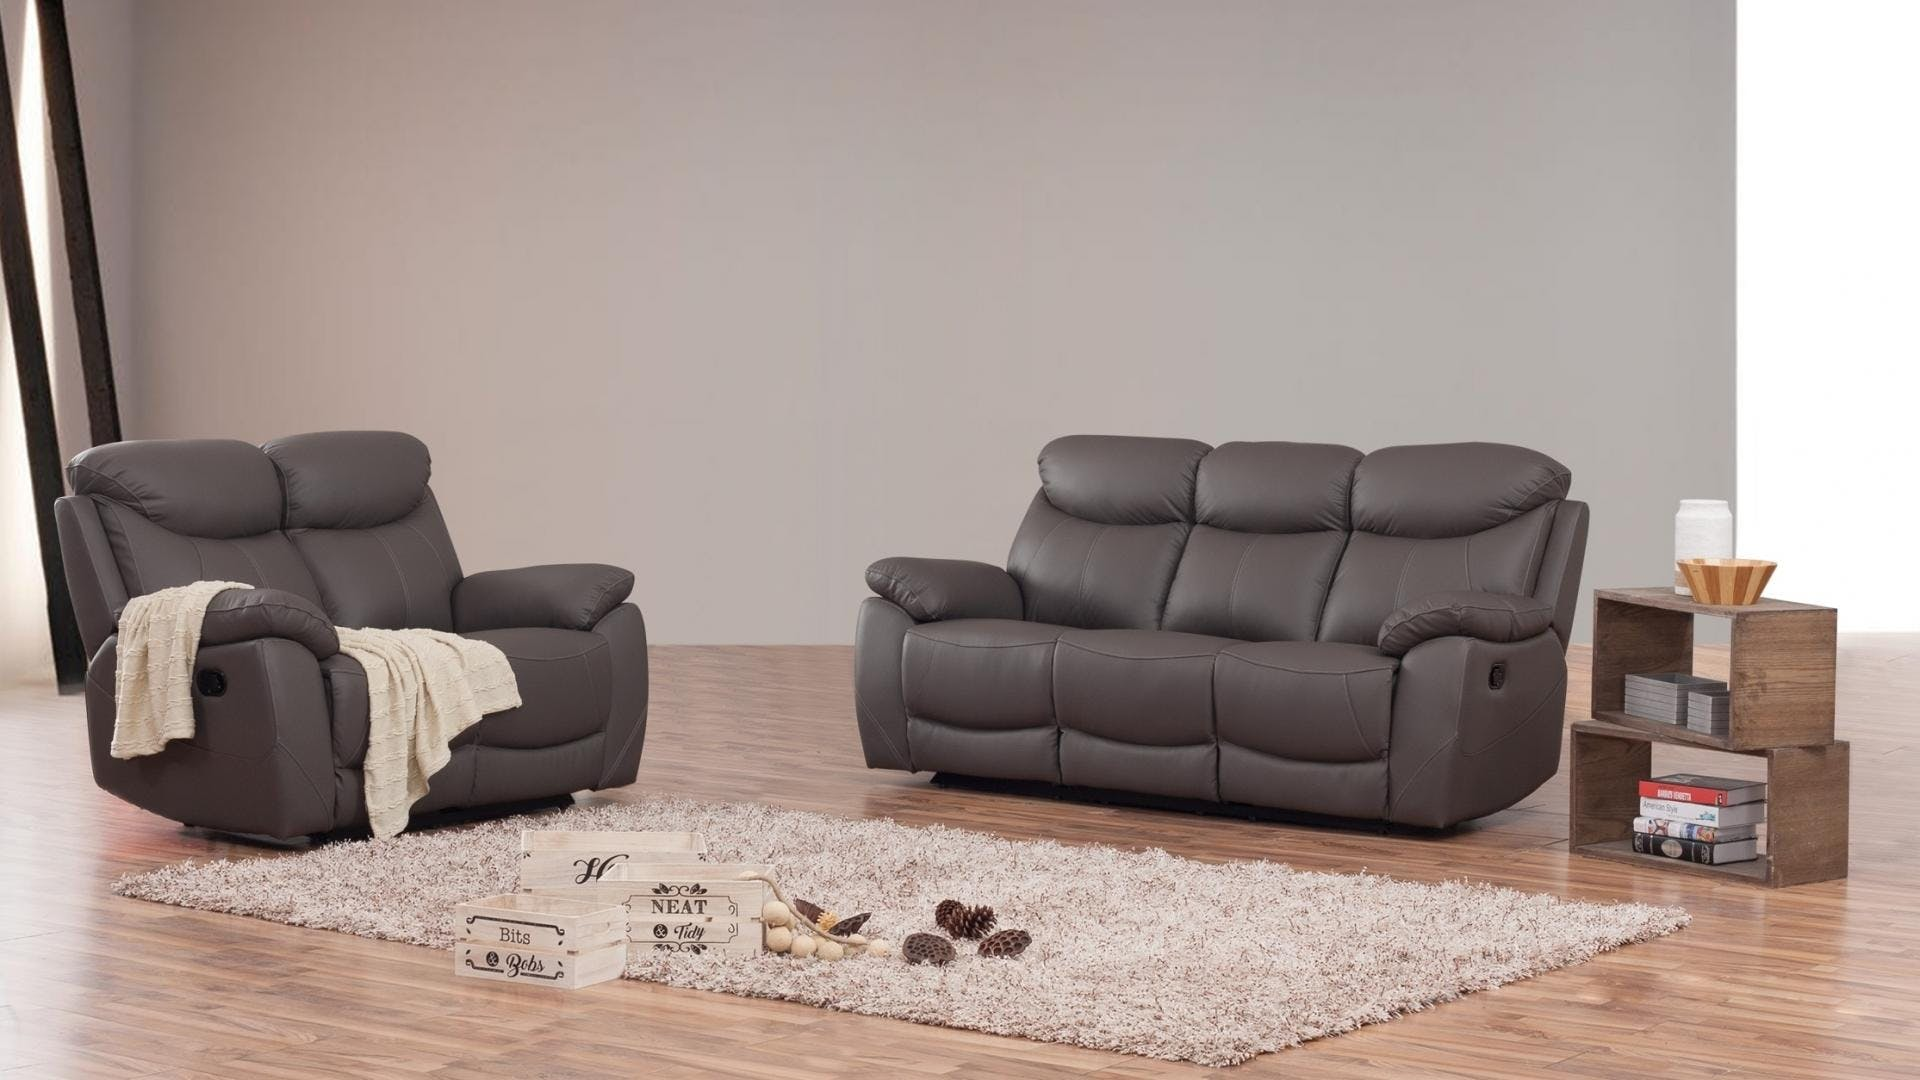 Surprising Brighton Leather Recliner Sofa Suite 3 2 Lounge Life Gmtry Best Dining Table And Chair Ideas Images Gmtryco